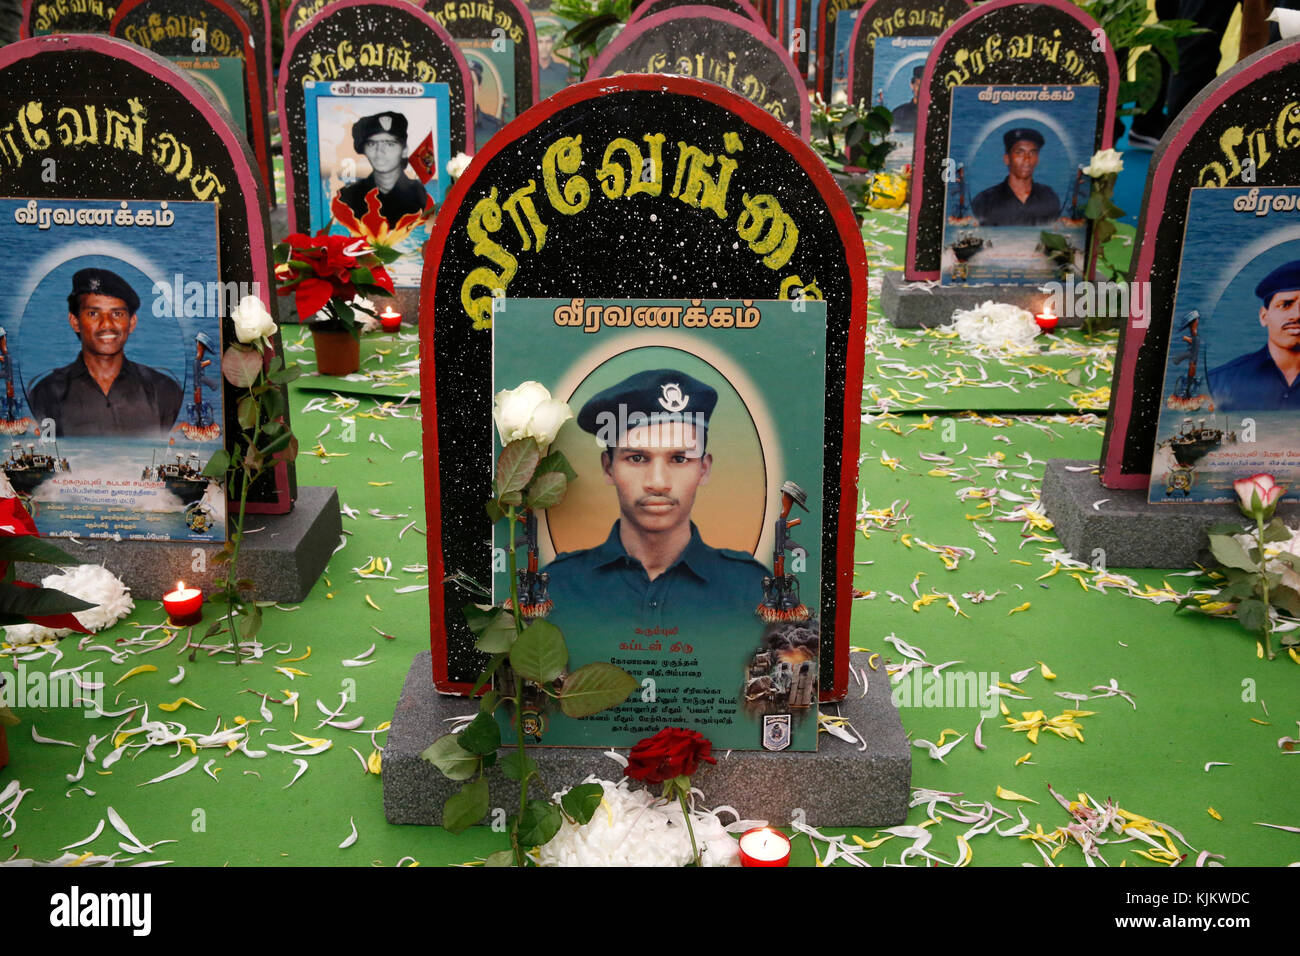 Tamil Eelam meeting in Sarcelles, France. Homage to the fallen soldiers of Tamil Eelam. - Stock Image